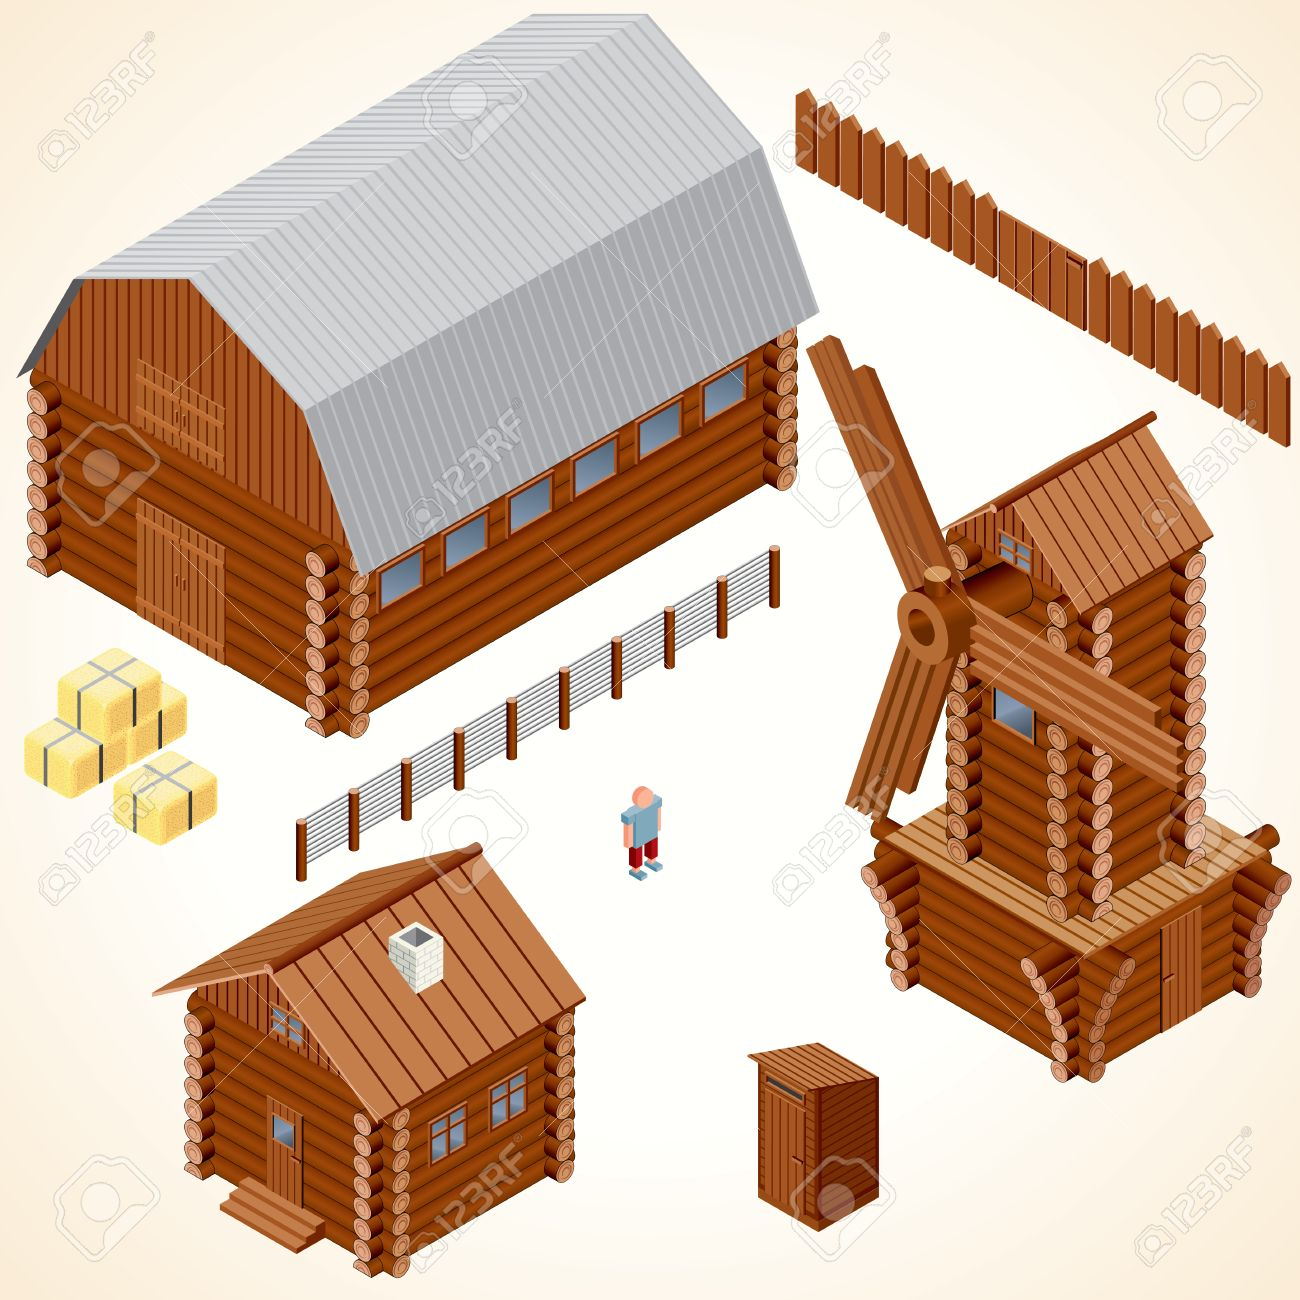 216 Outhouse Stock Vector Illustration And Royalty Free Outhouse ...